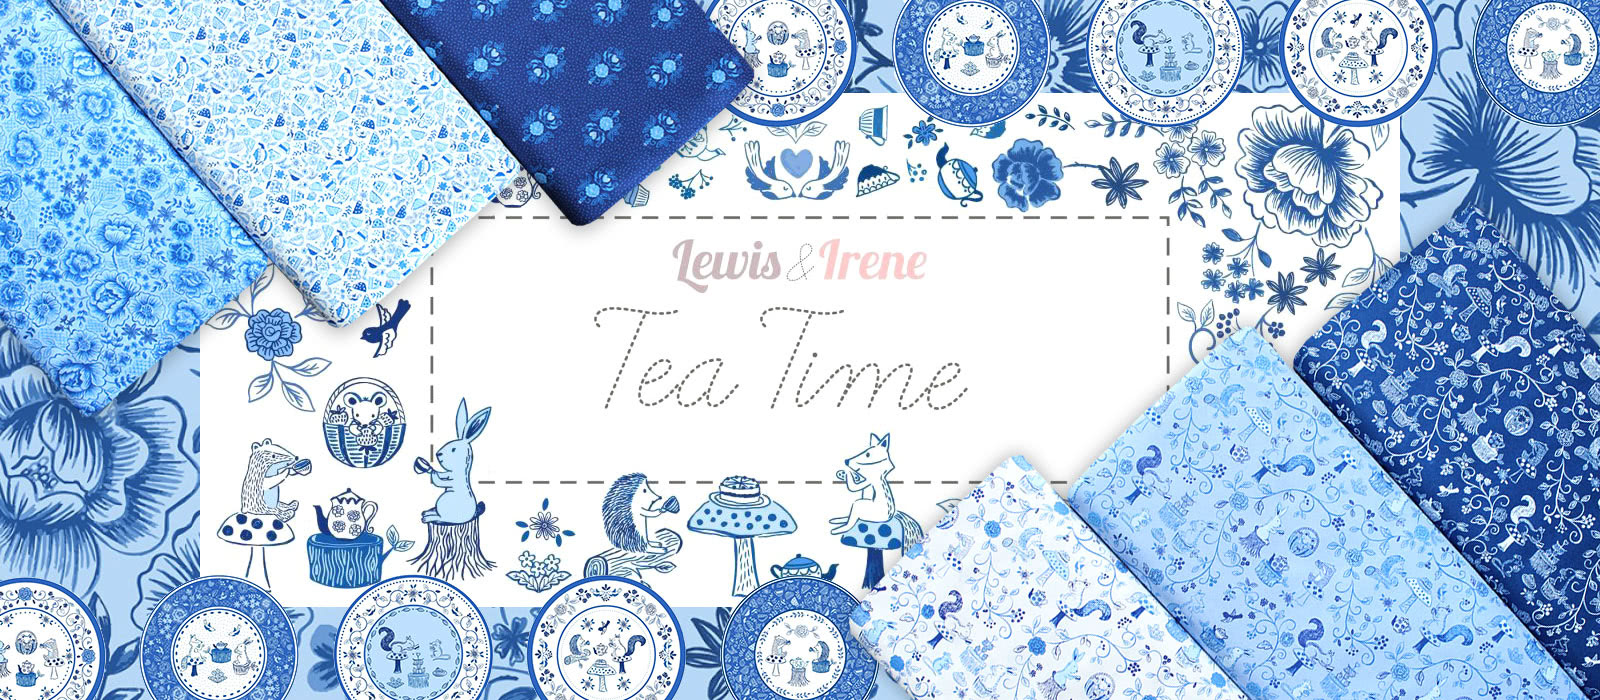 Lewis & Irene Teatime Collection